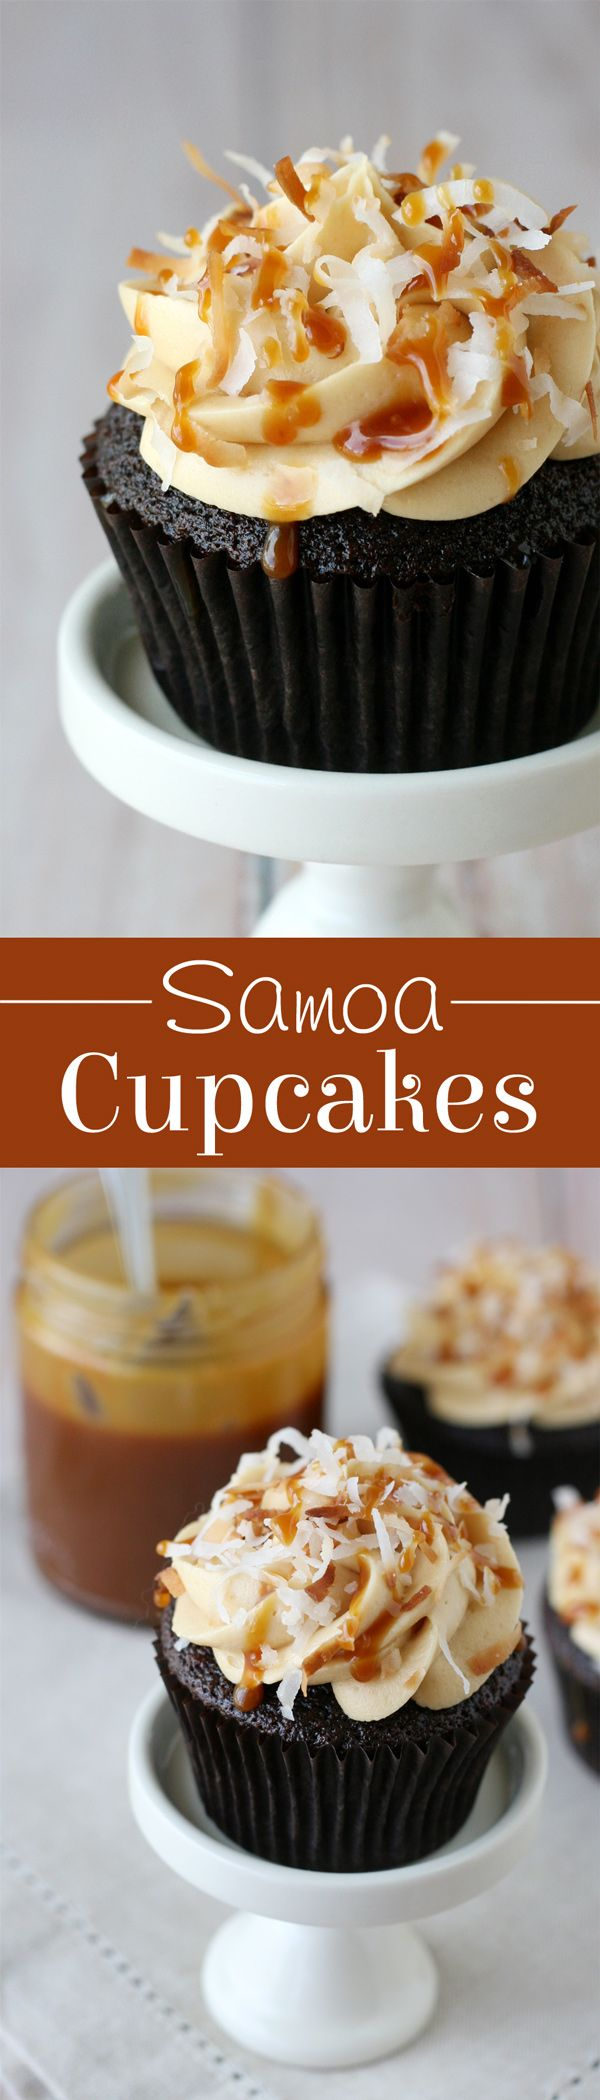 Samoa Cupcakes - Glorious Treats